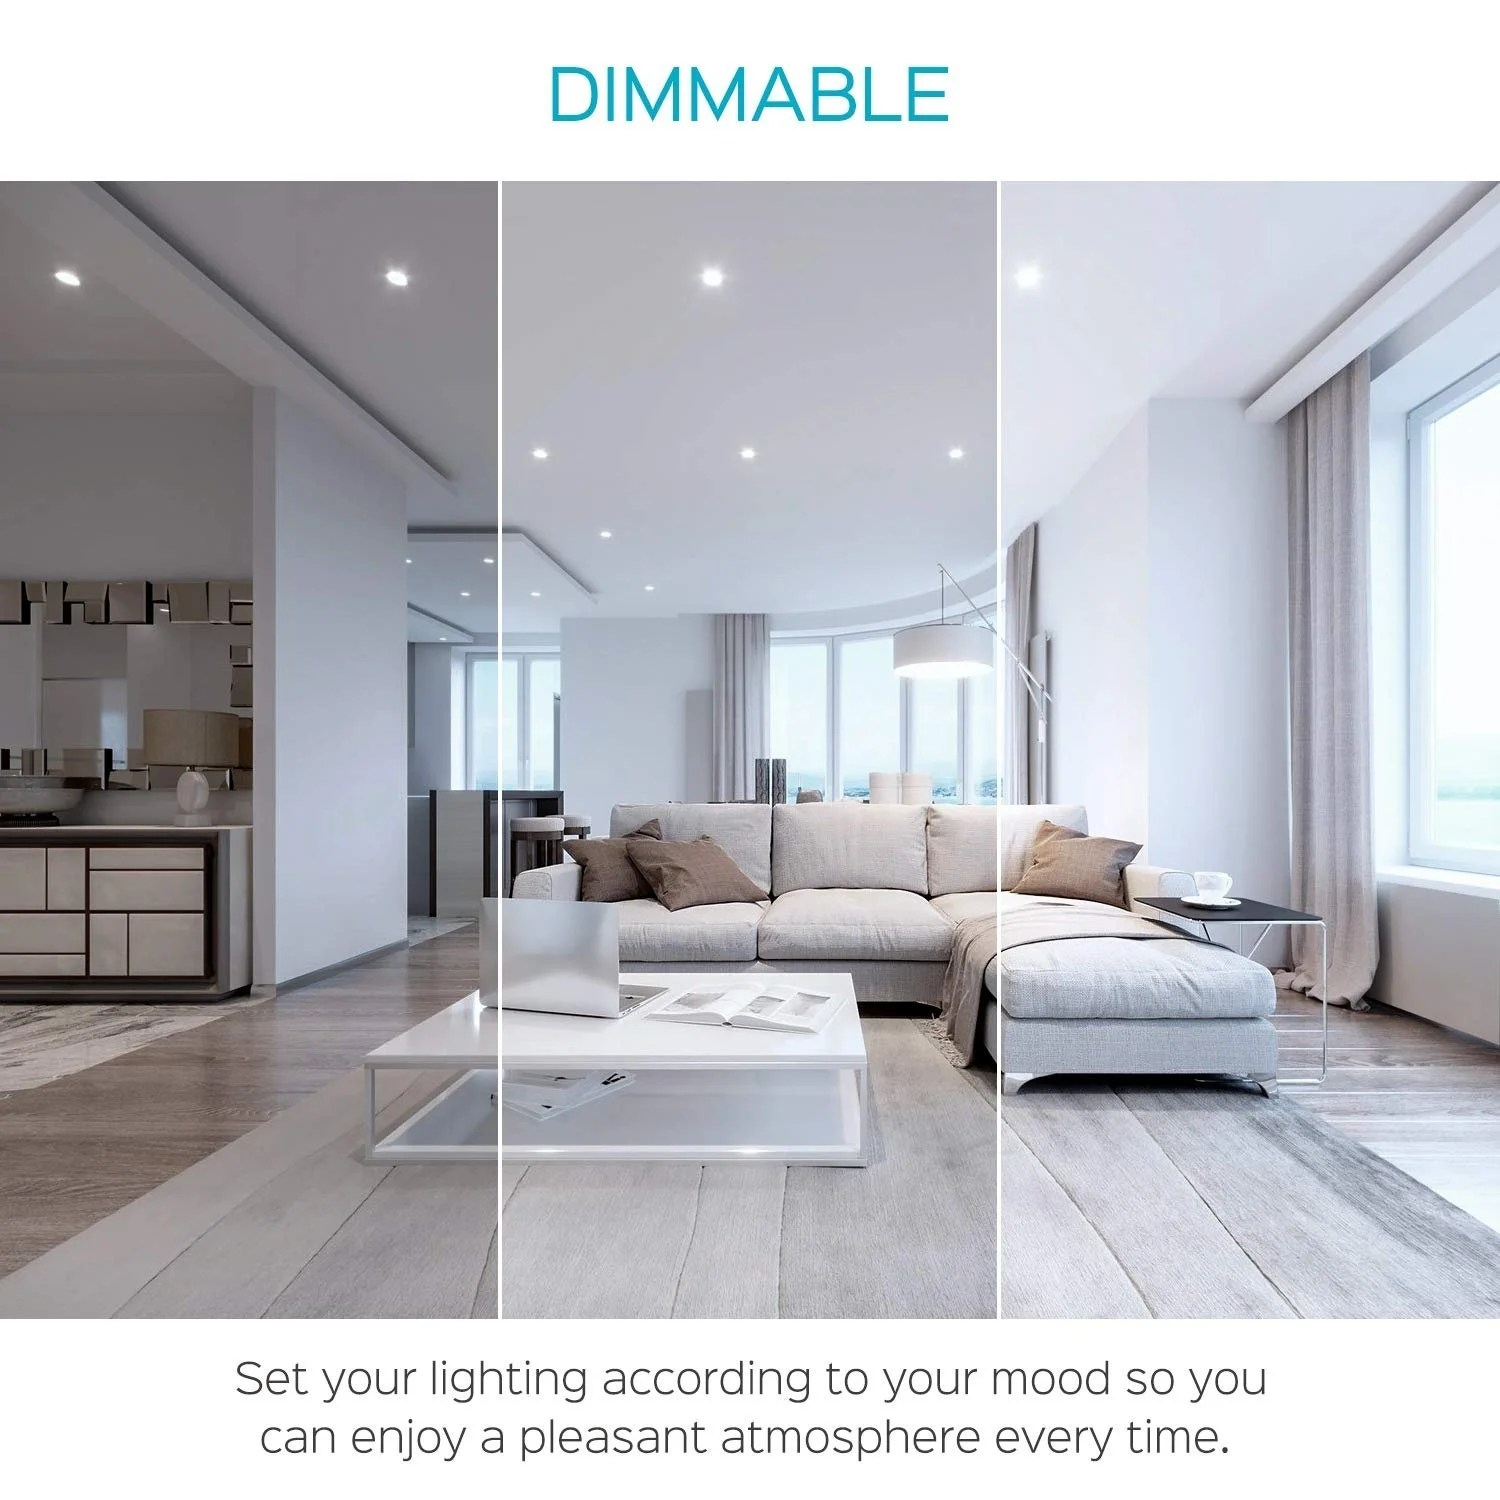 luxrite 6 inch square ultra thin led recessed light with j box 12w dimmable 850 lumens ic damp rated 12 pack